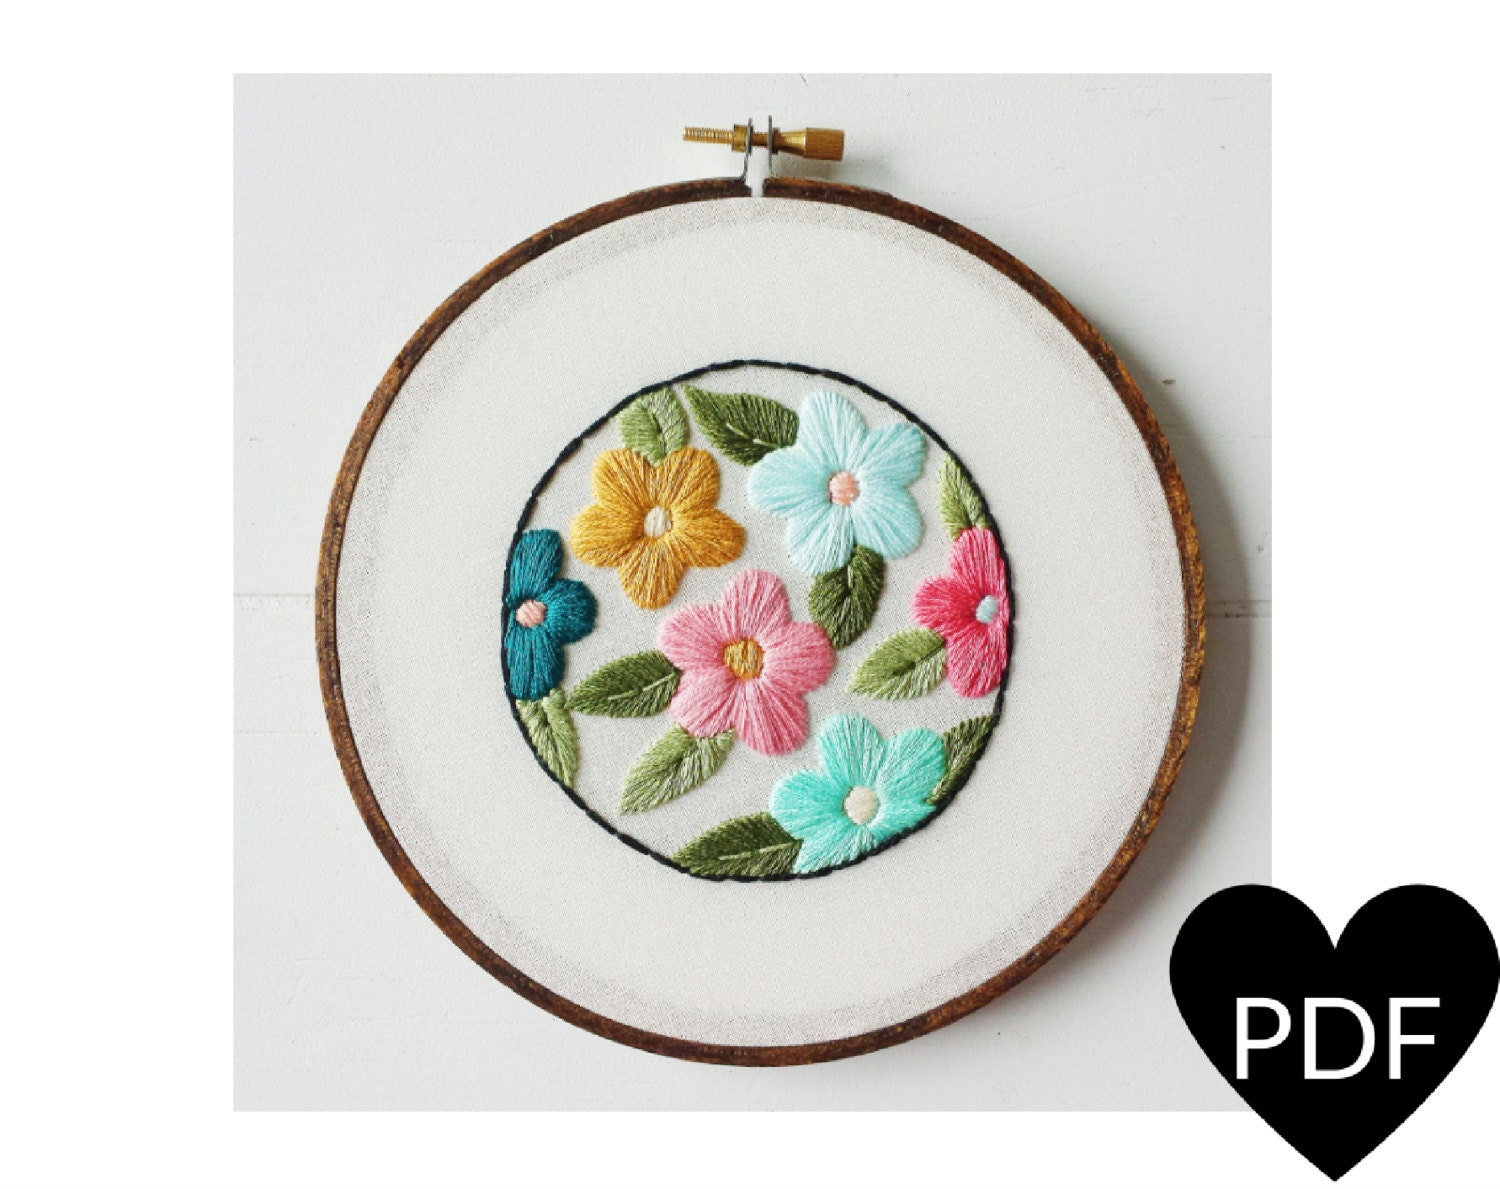 Retro floral embroidery pattern pdf vintage inspired